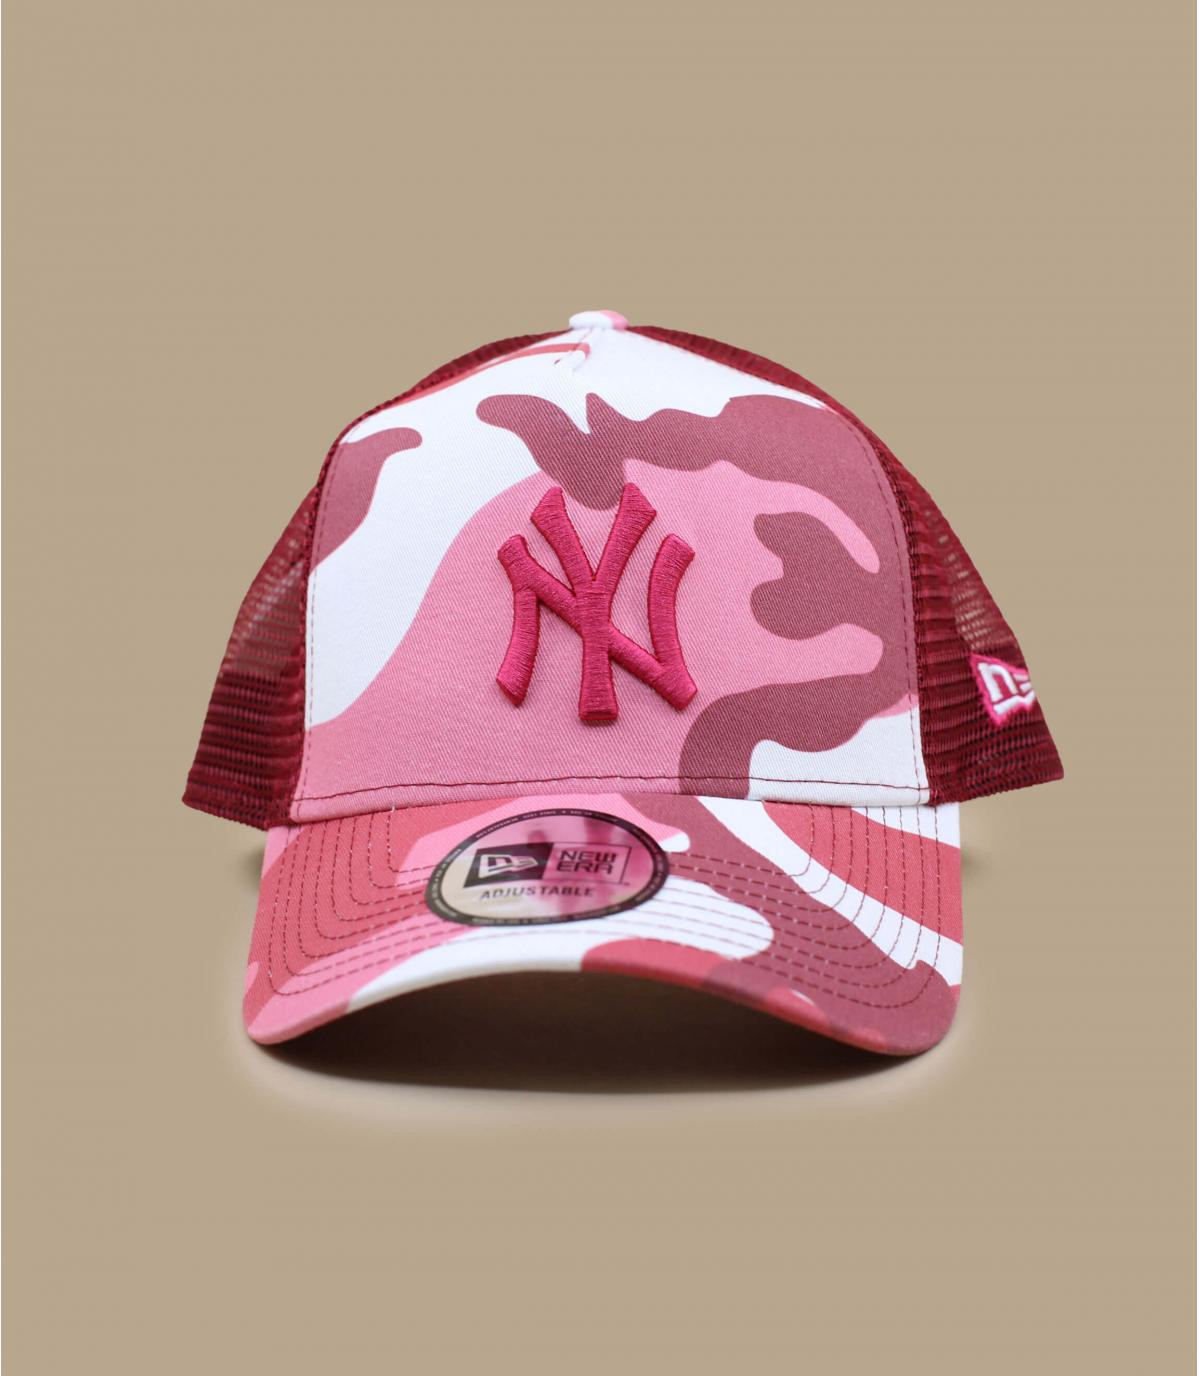 Détails Trucker Camo Pack NY red - image 2